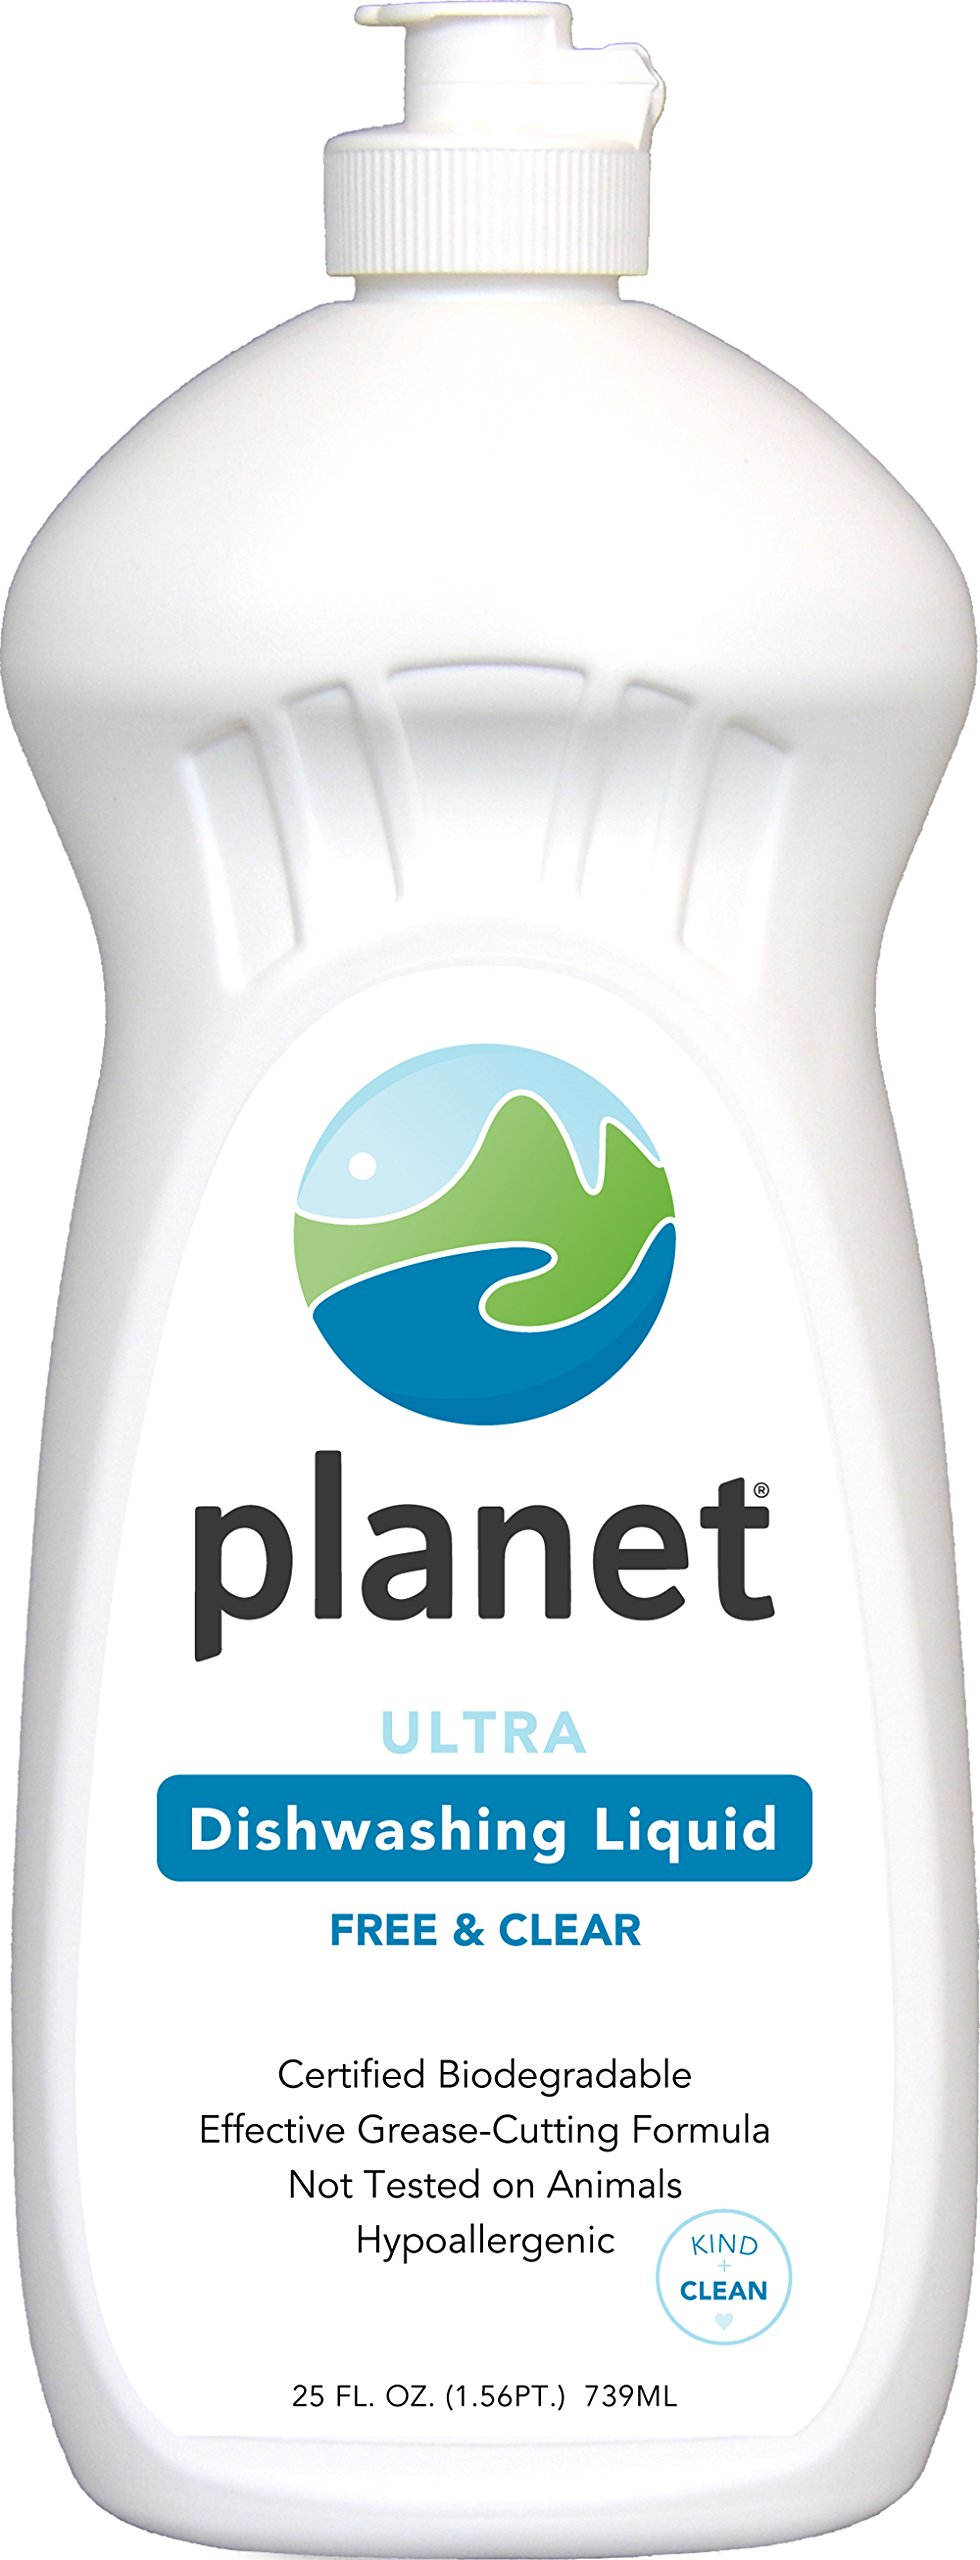 Planet Ultra Dishwashing Liquid, 25 Fluid Ounce Bottles (Pack of 12)